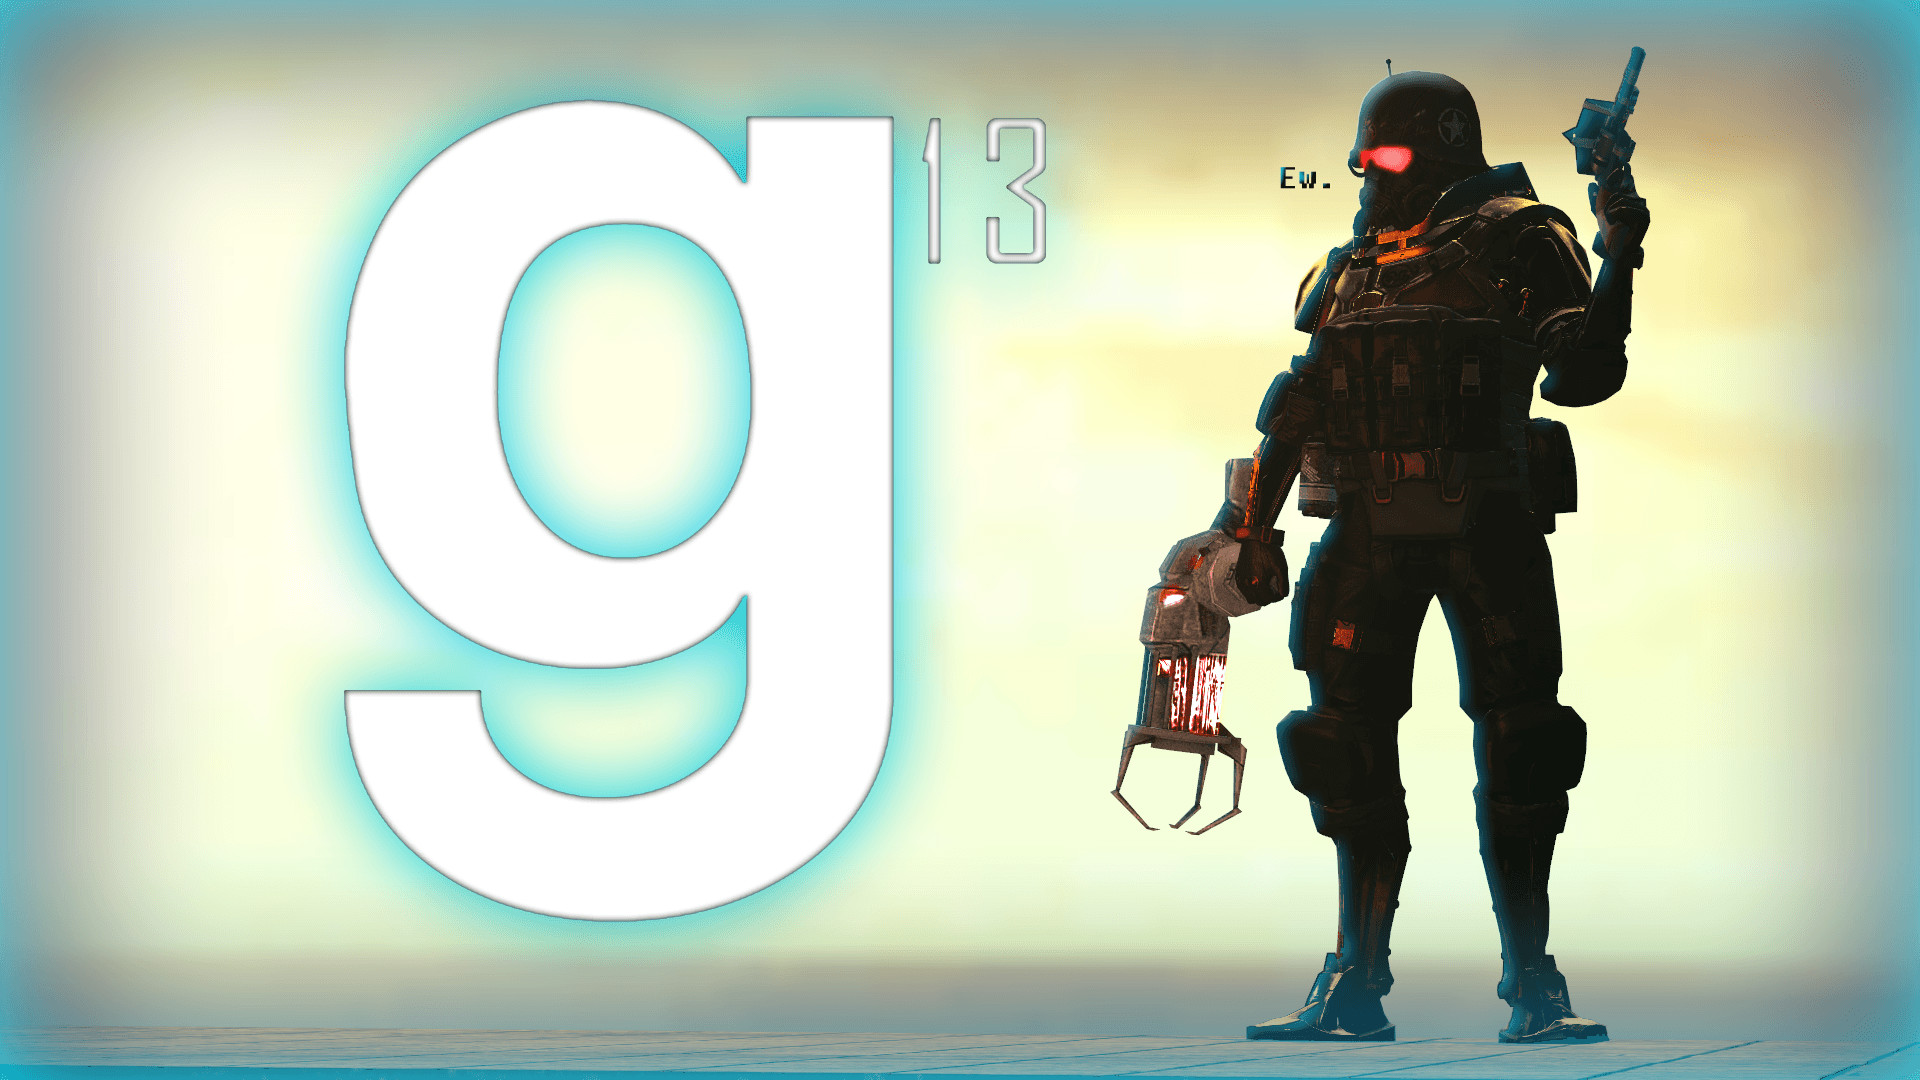 Gmod 13 Wallpaper 85 Images